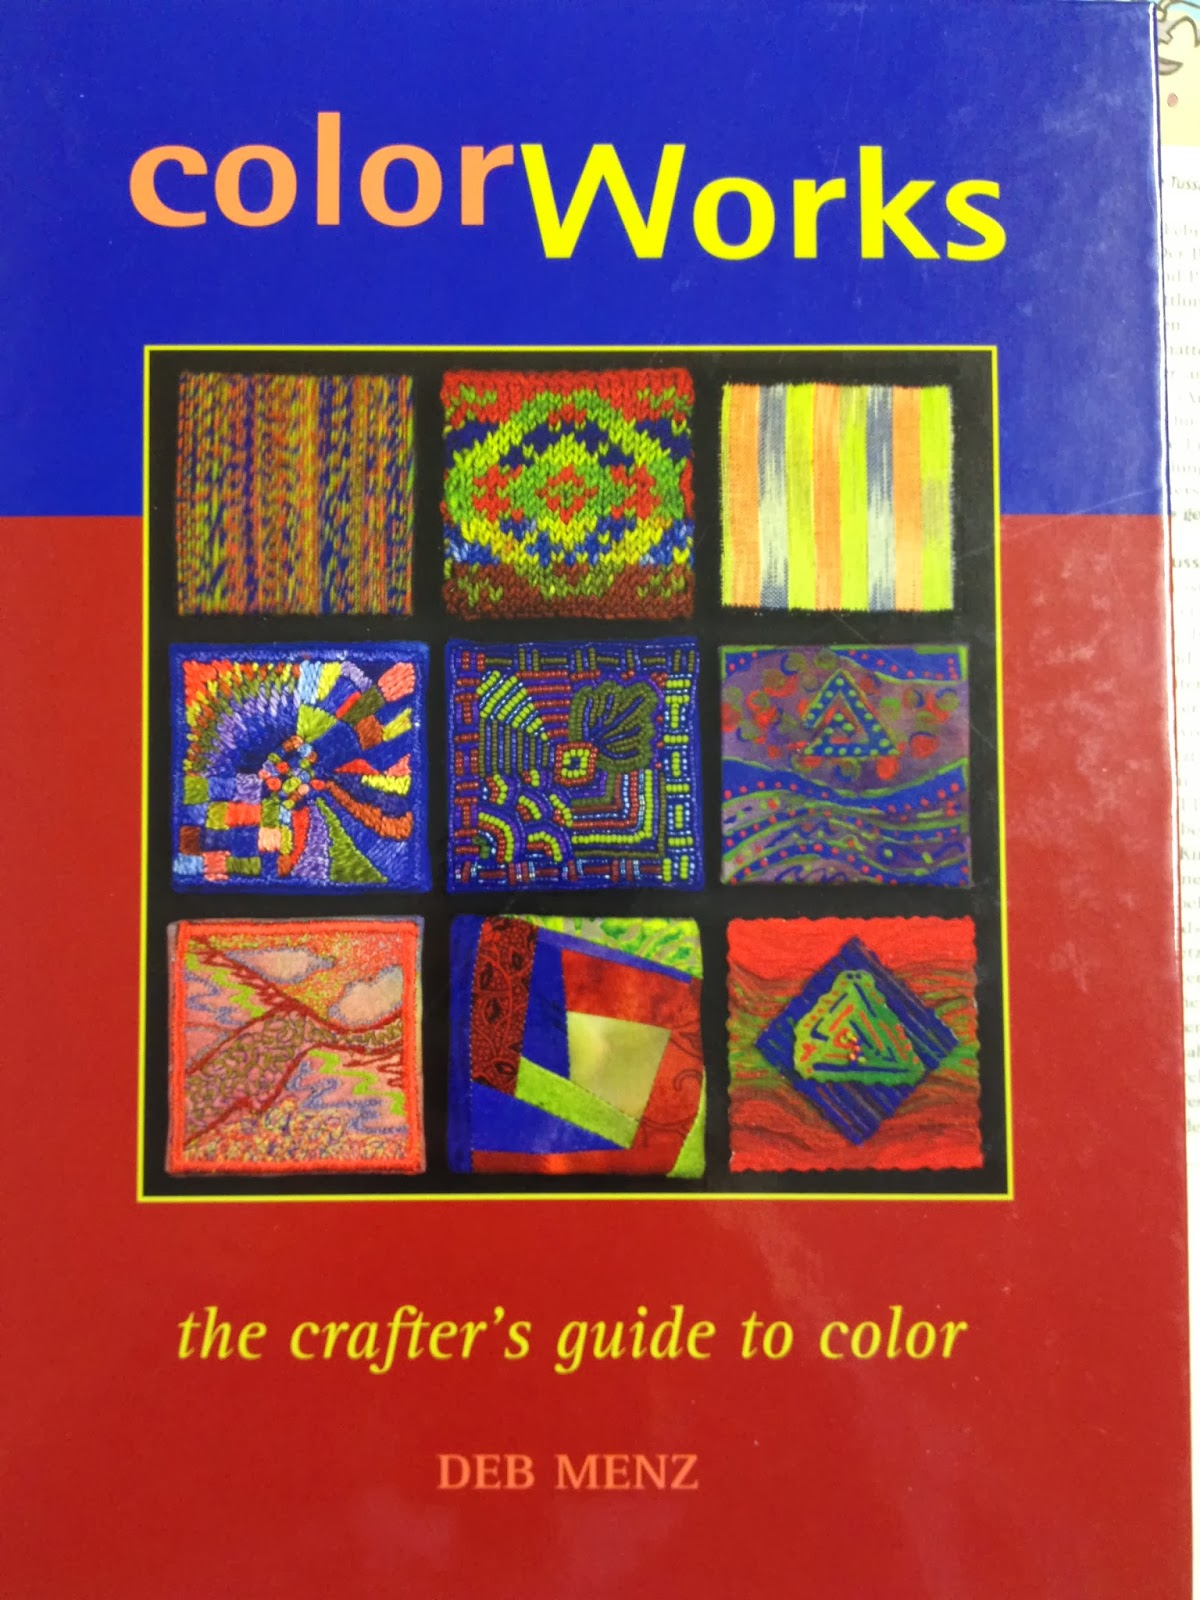 http://www.amazon.de/Color-Works-The-Crafters-Guide/dp/1931499470/ref=sr_1_2?ie=UTF8&qid=1390678790&sr=8-2&keywords=color+works